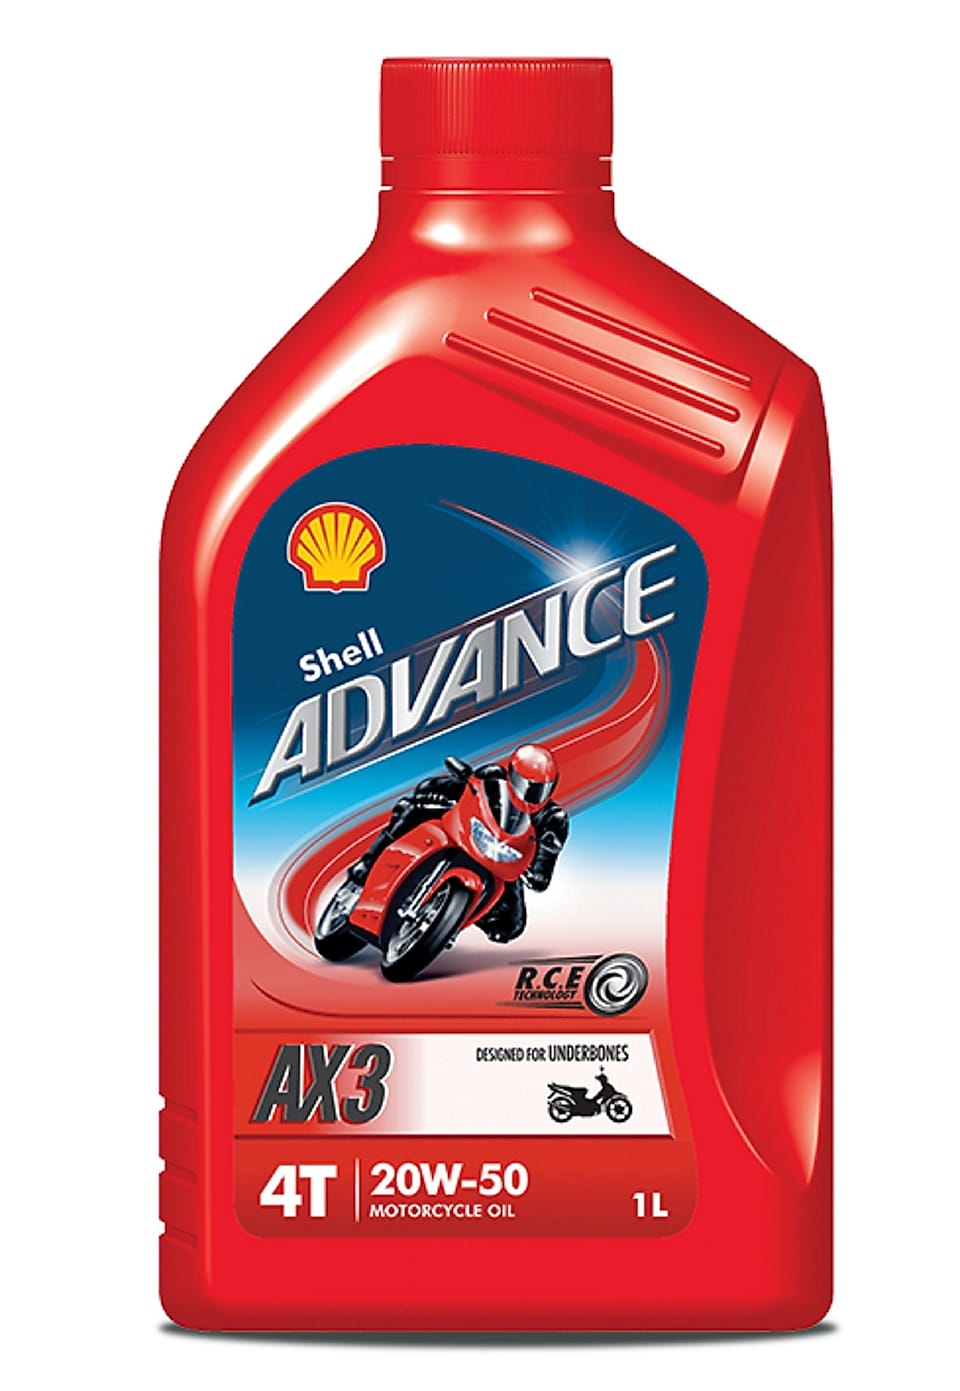 Shell Advance AX3 1 litre